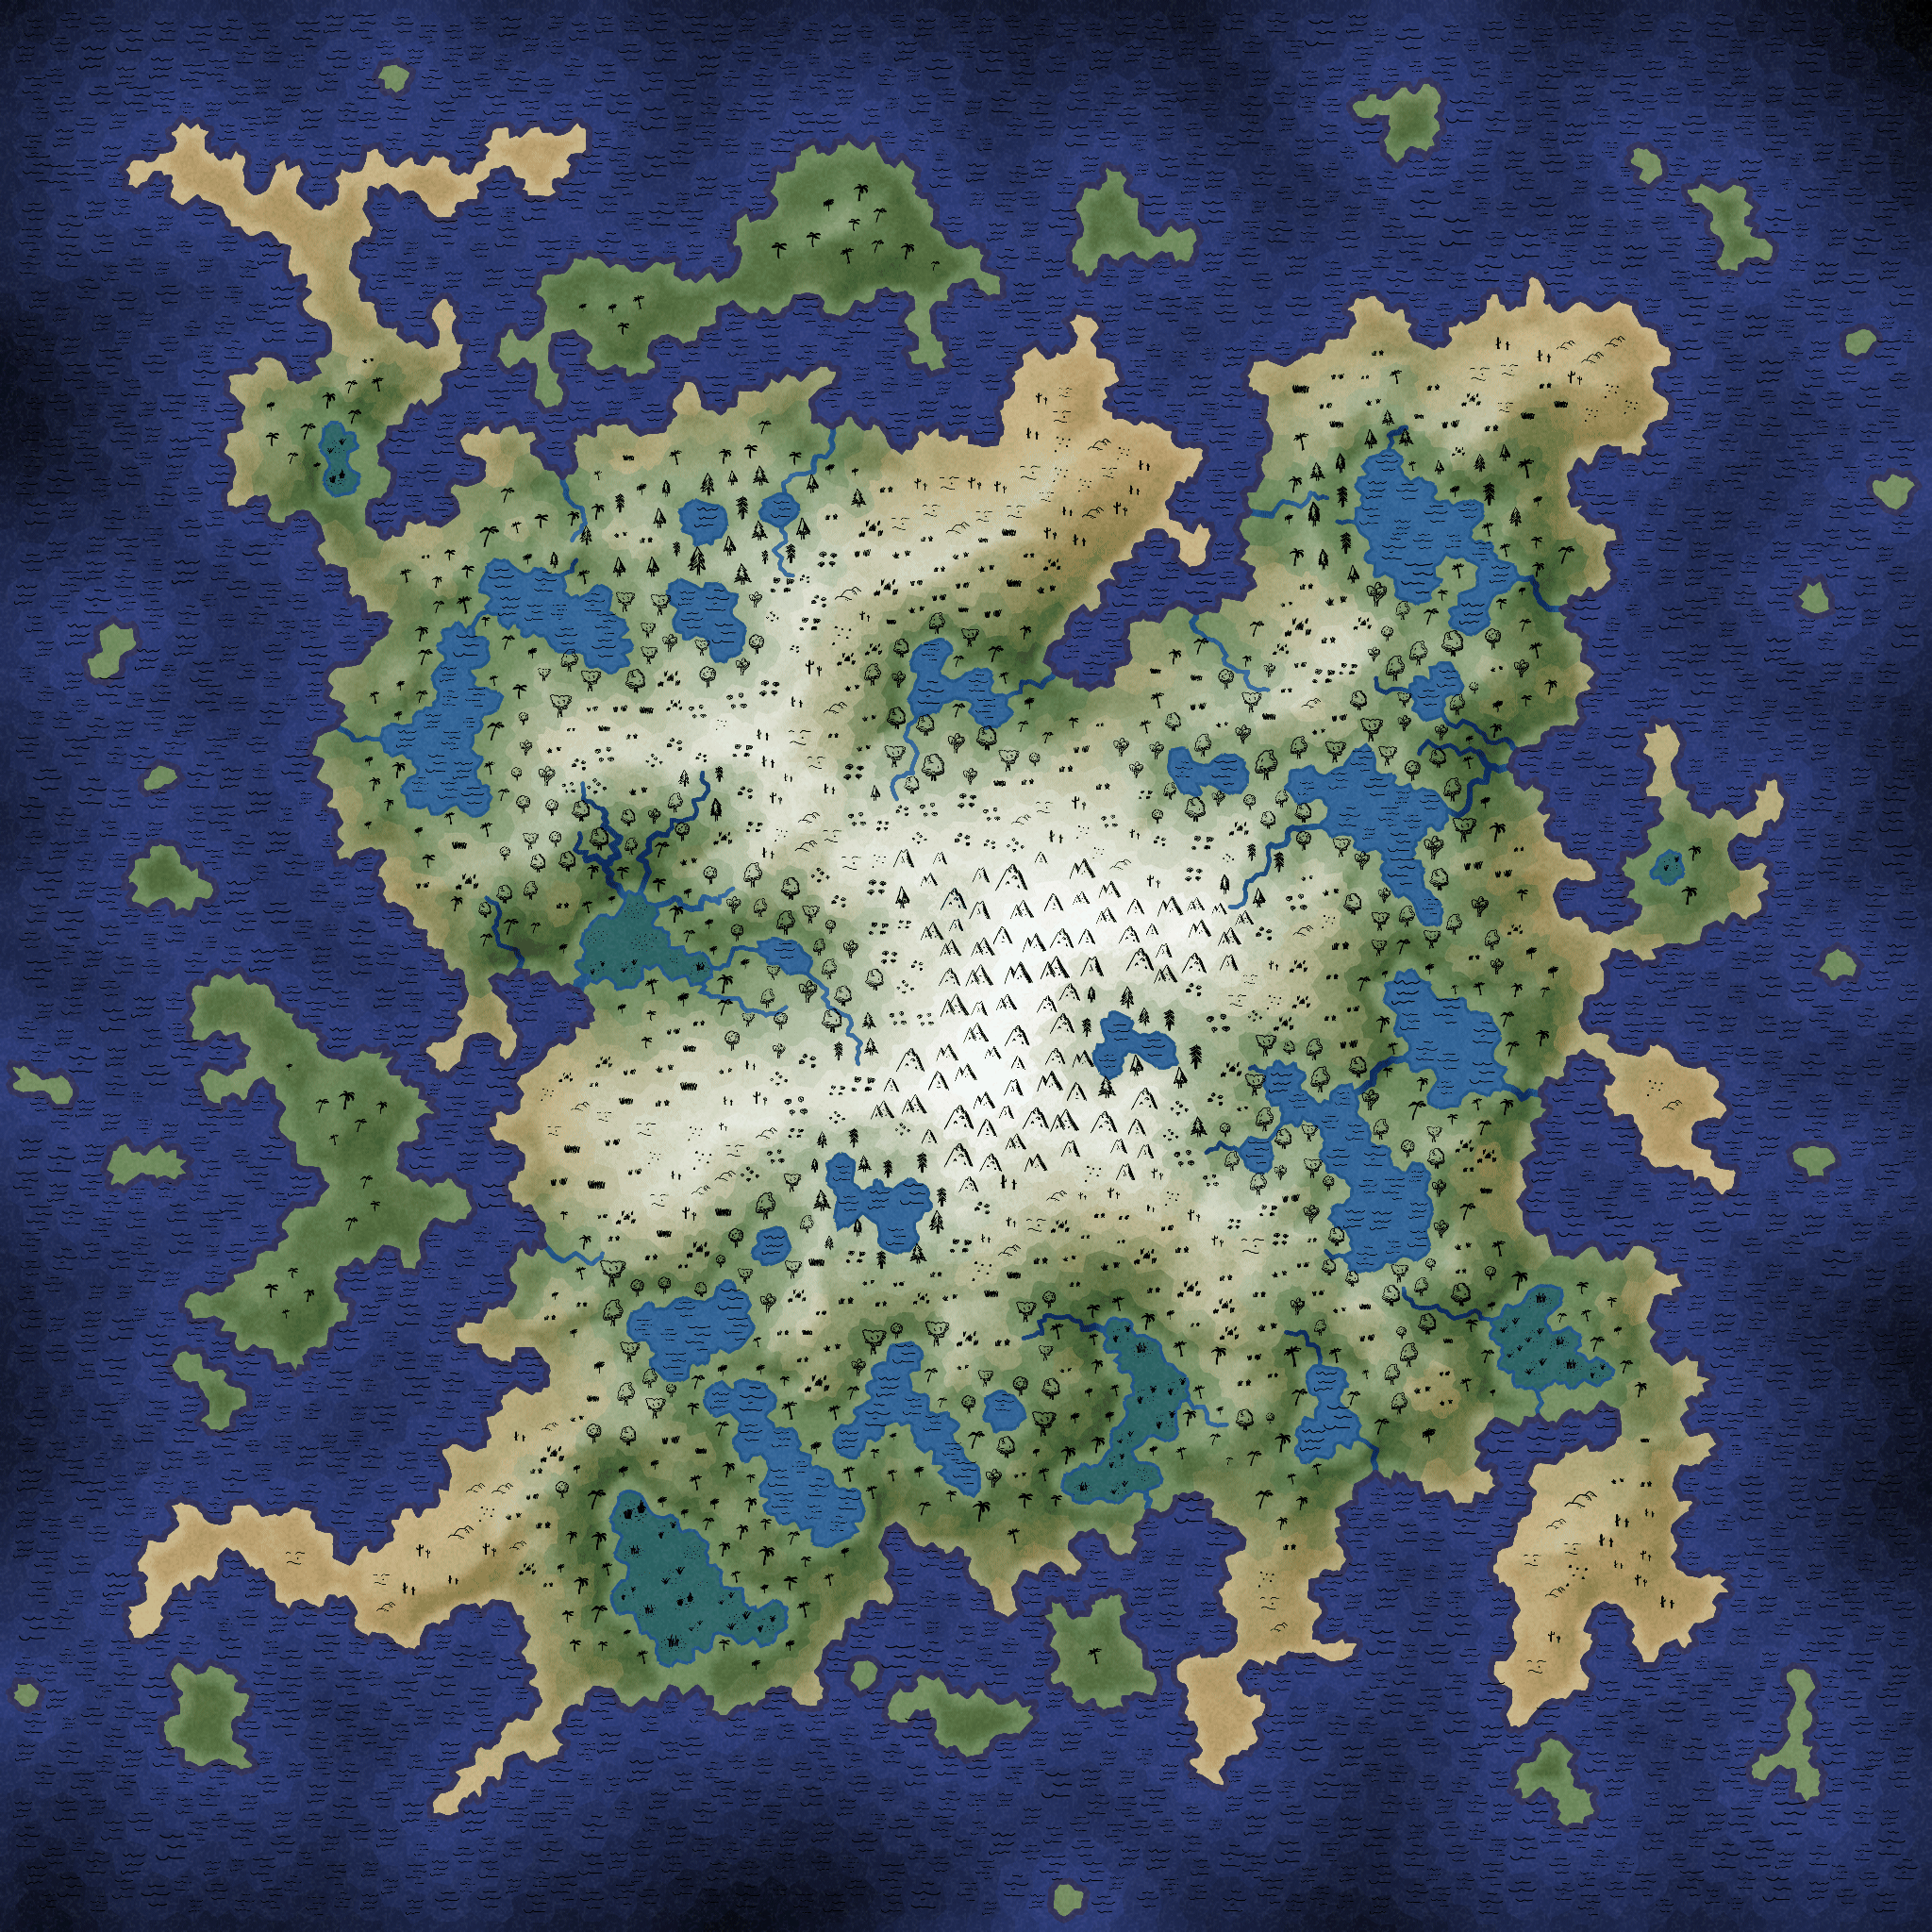 Blobs in games updating mapgen2 back in 2010 when i wrote a procedural map generator based on voronoi polygons instead of perlin noise the goal was to produce volcanic islands with a gumiabroncs Images